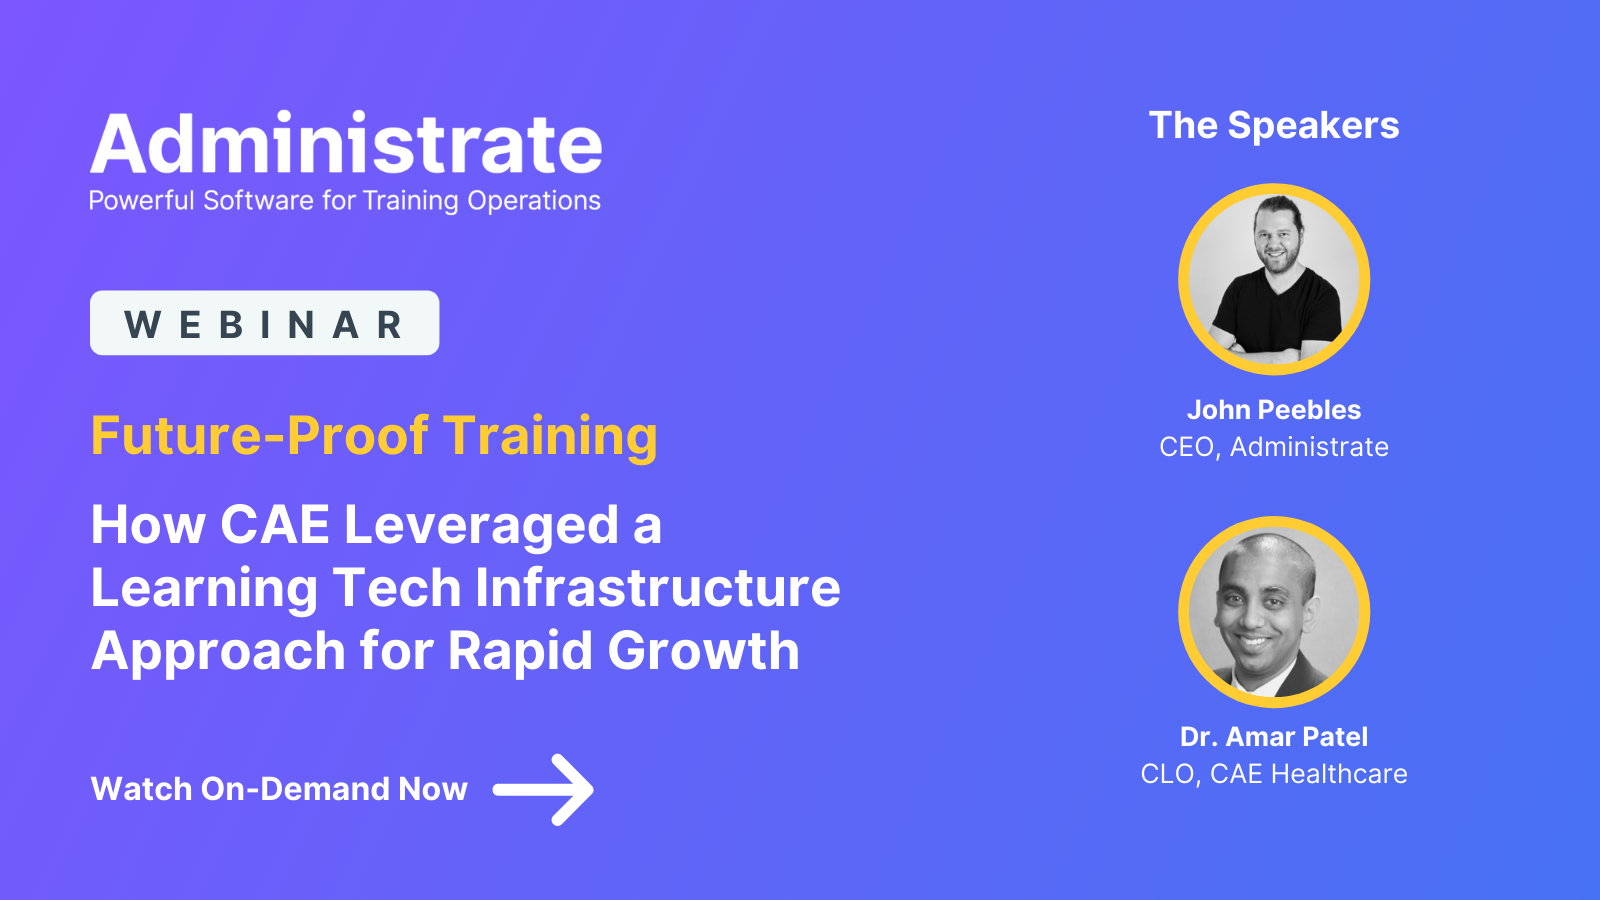 Watch this Webinar On-Demand Now!